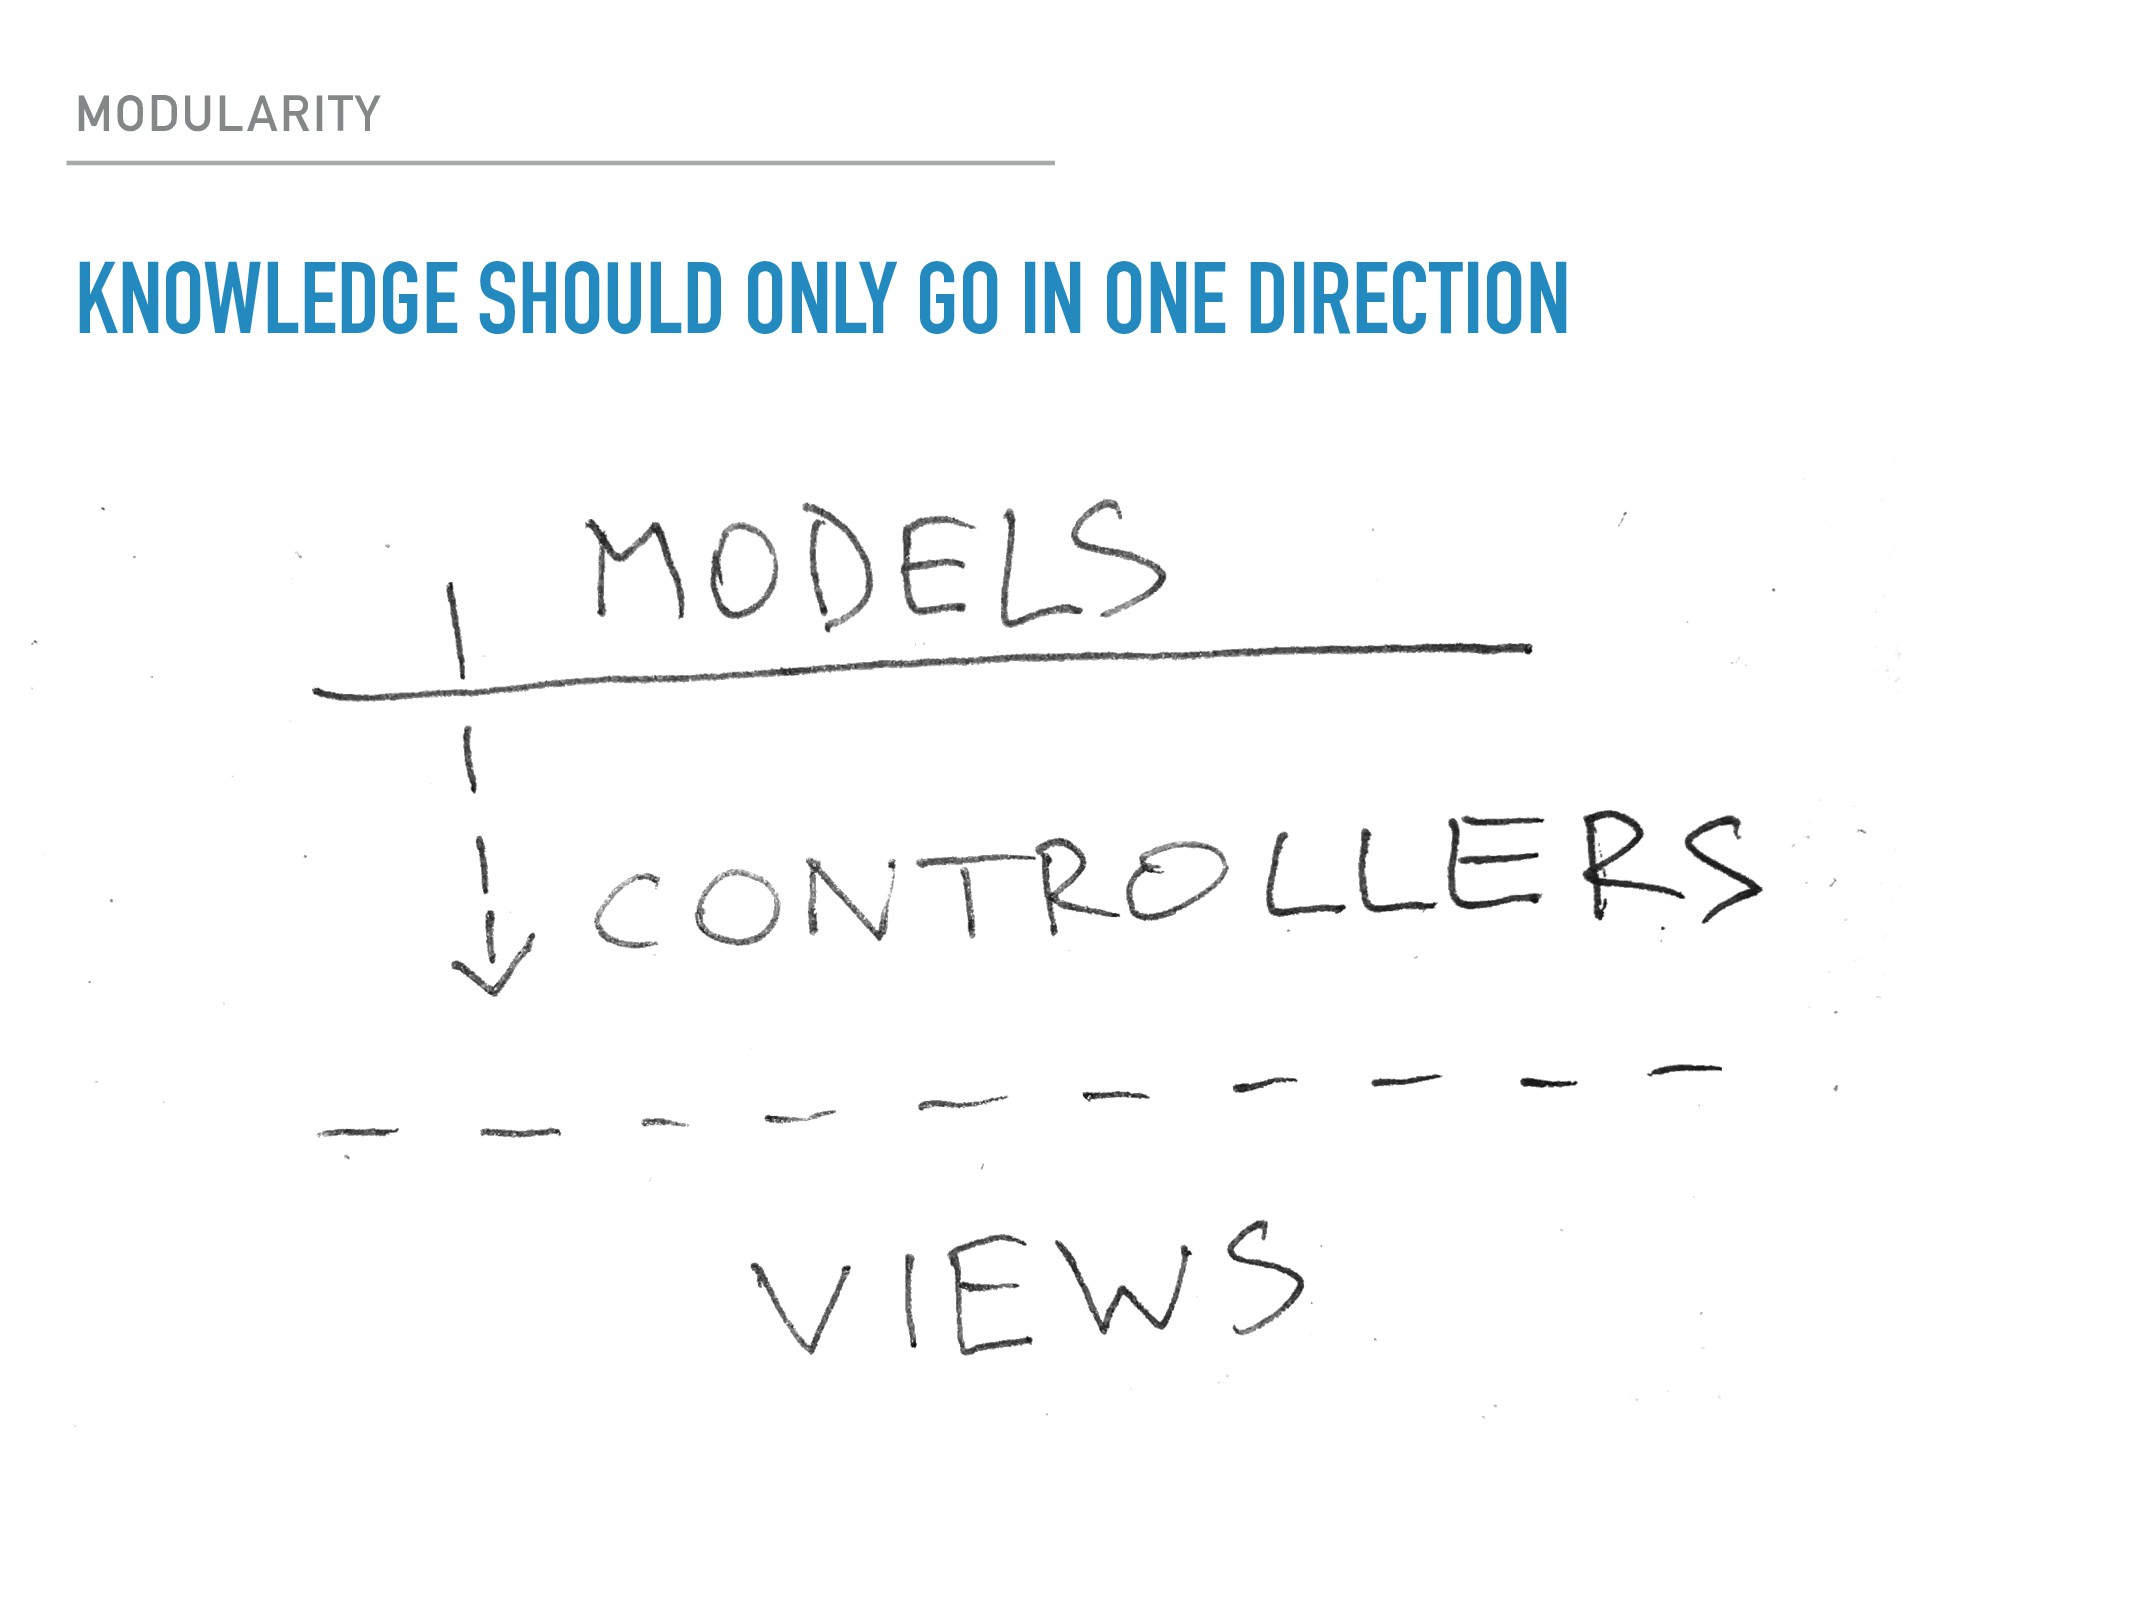 MODULARITY KNOWLEDGE SHOULD ONLY GO IN ONE DIRE...